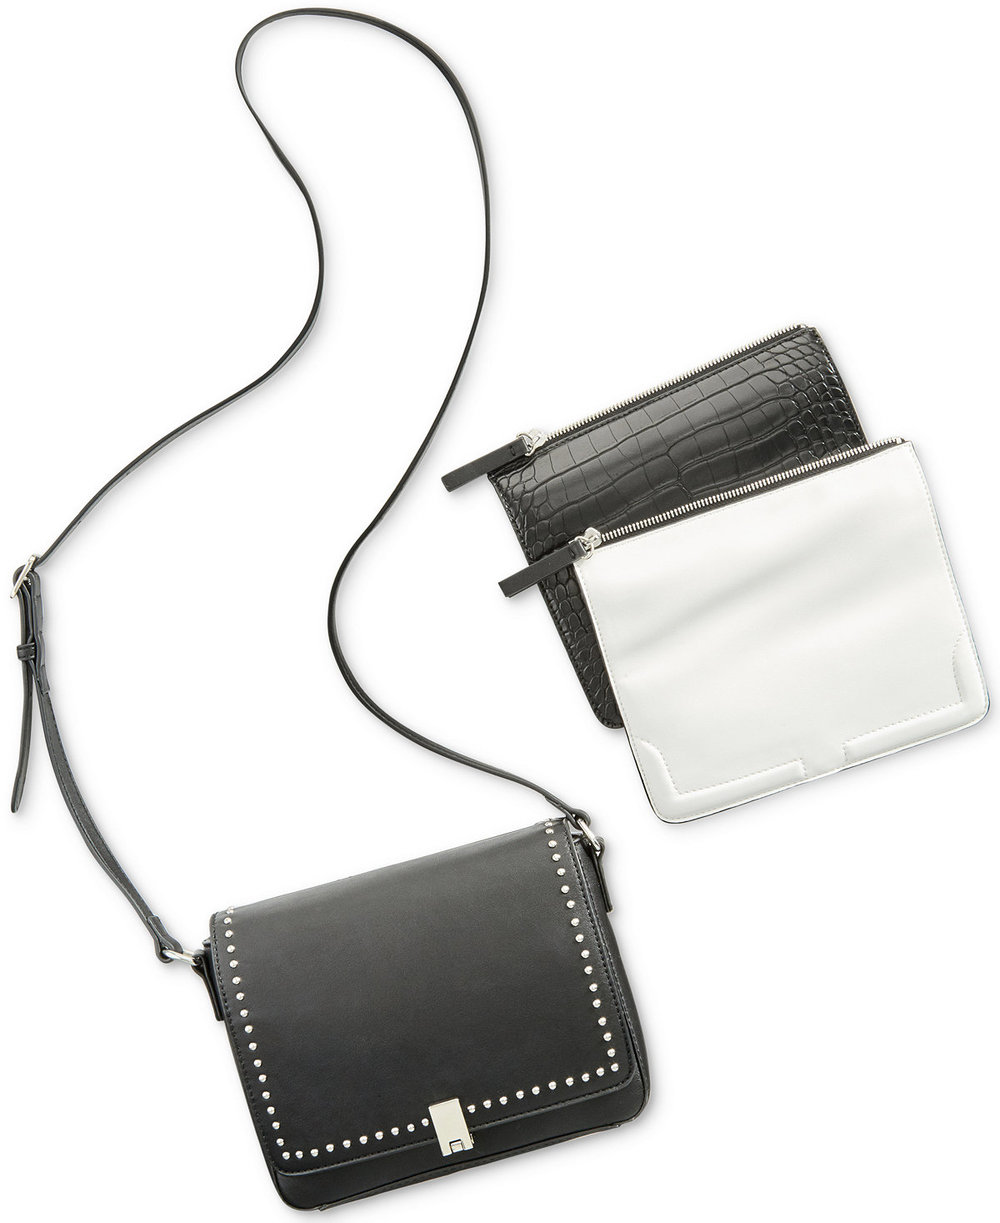 nine west changeable purse.jpeg